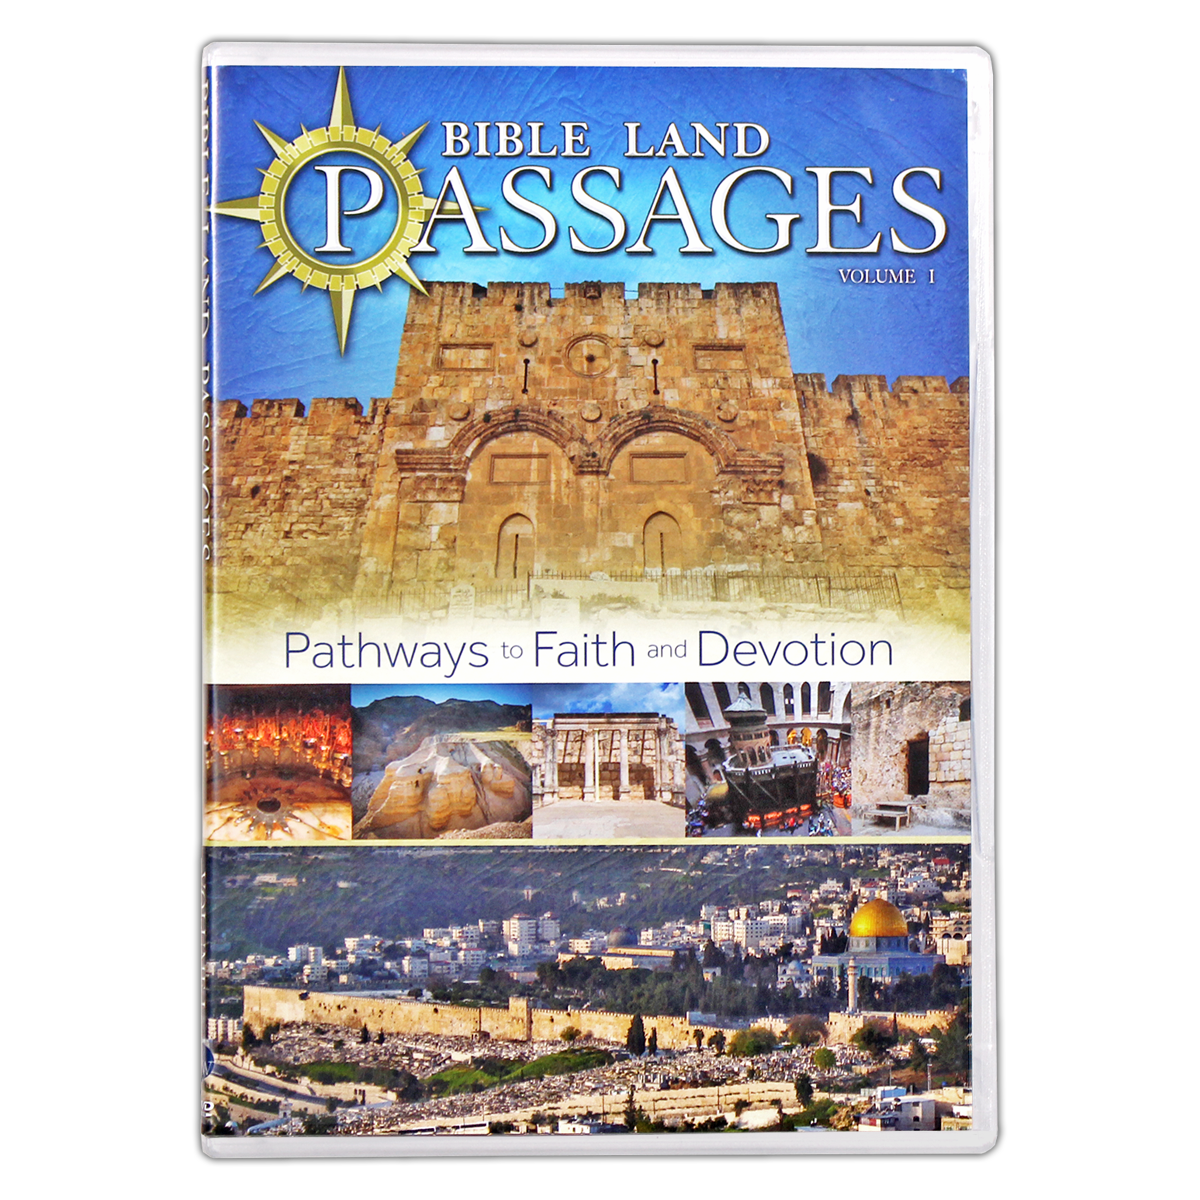 Bible Land Passages: Volume 1